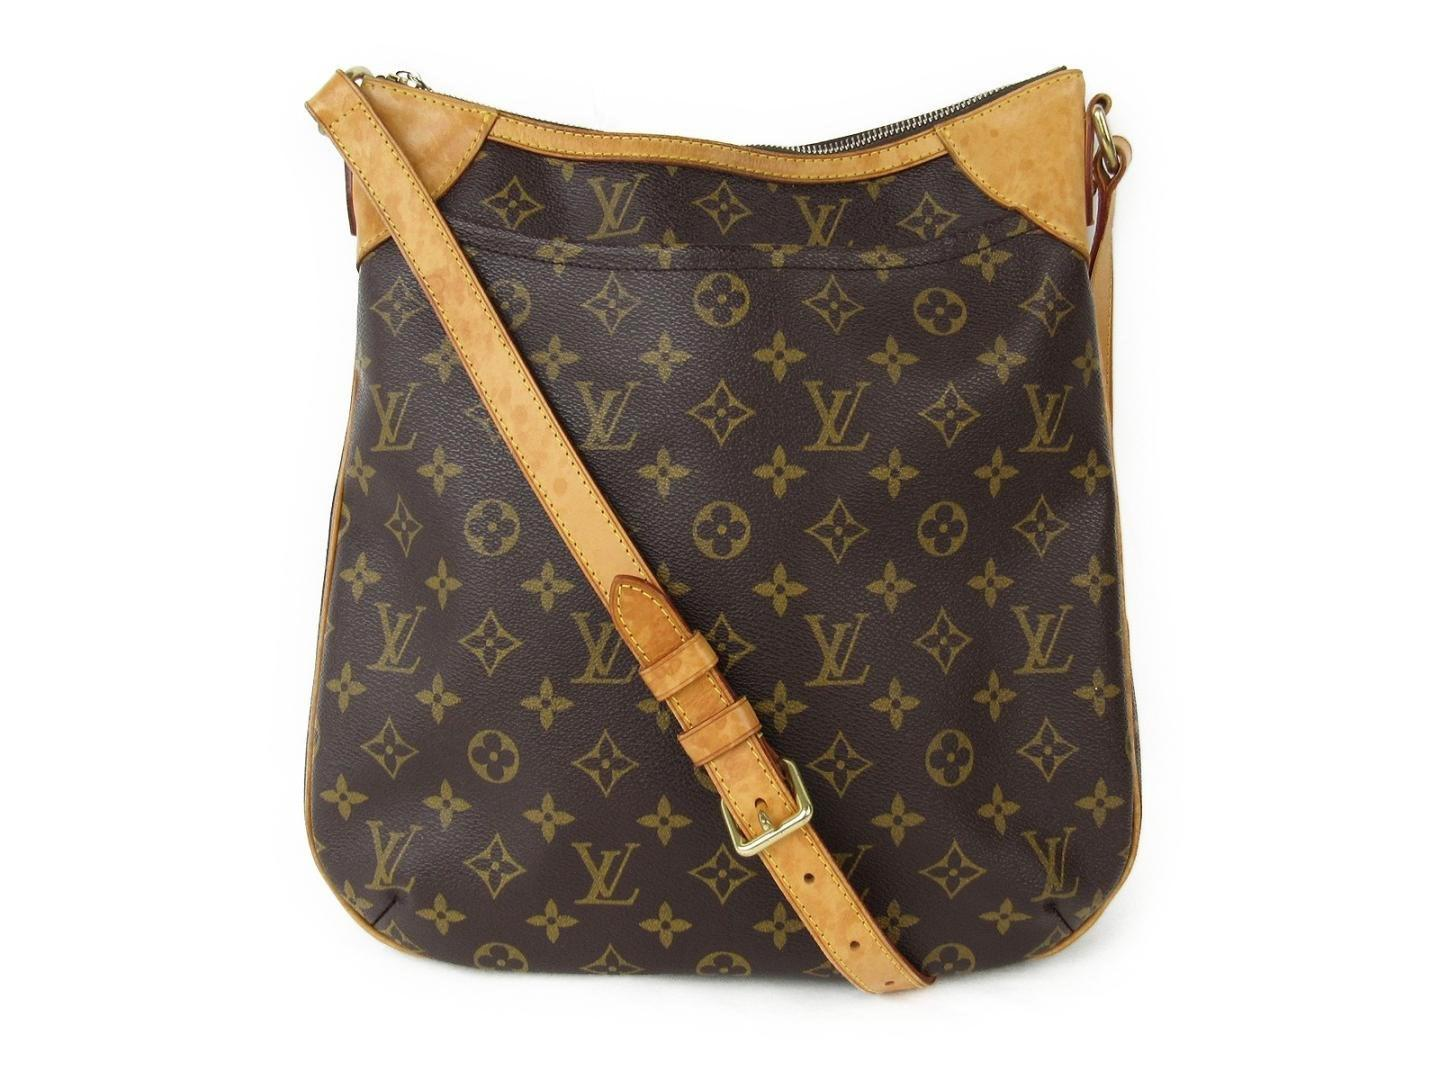 afea05e6afd5 Lyst - Louis Vuitton Odeon Mm Shoulder Bag Monogram Brown M56389 in ...